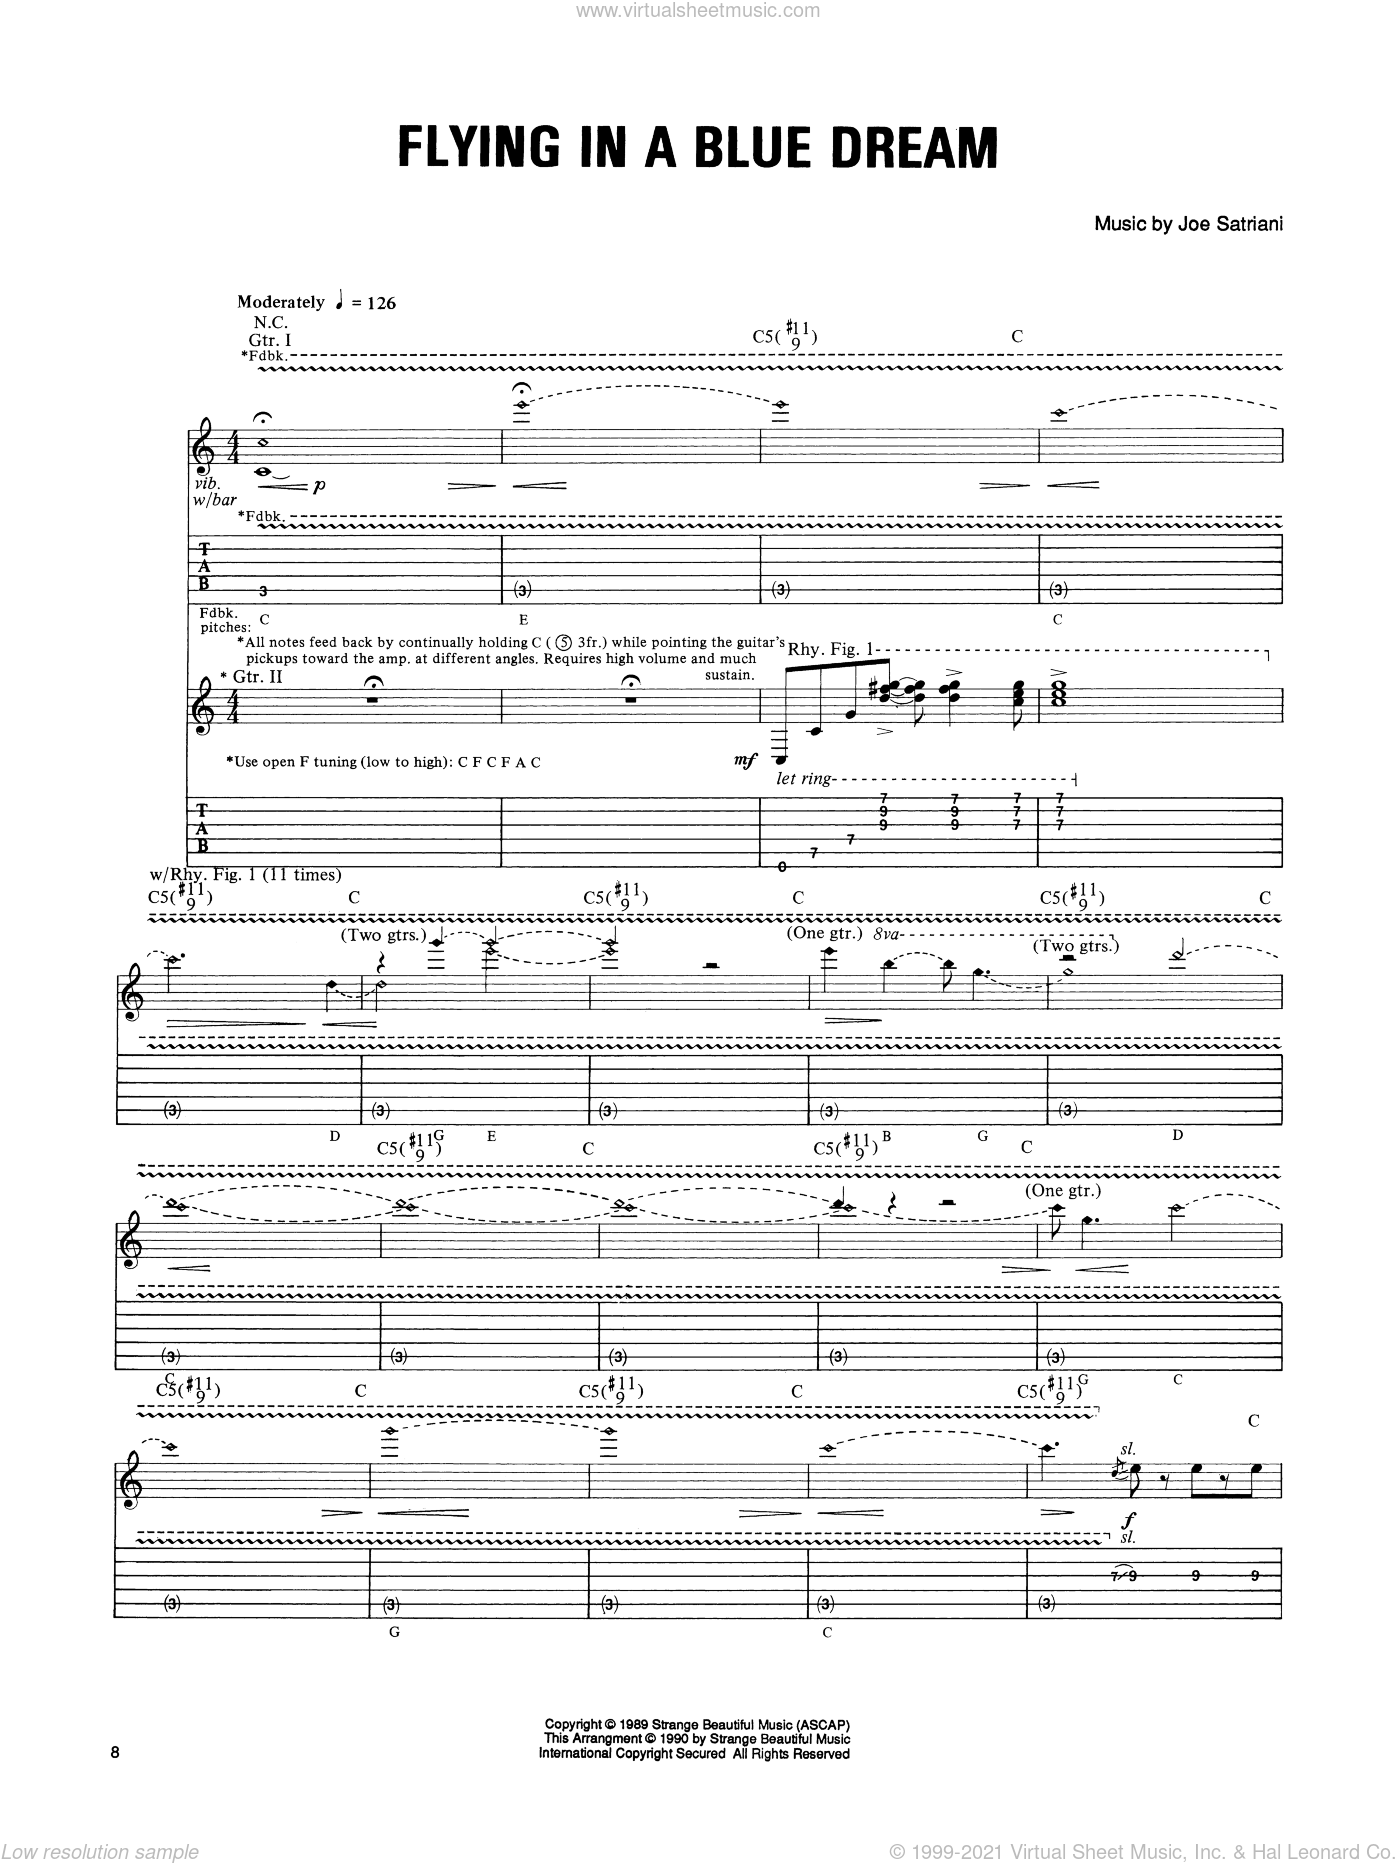 Flying In A Blue Dream sheet music for guitar (tablature) by Joe Satriani, intermediate skill level